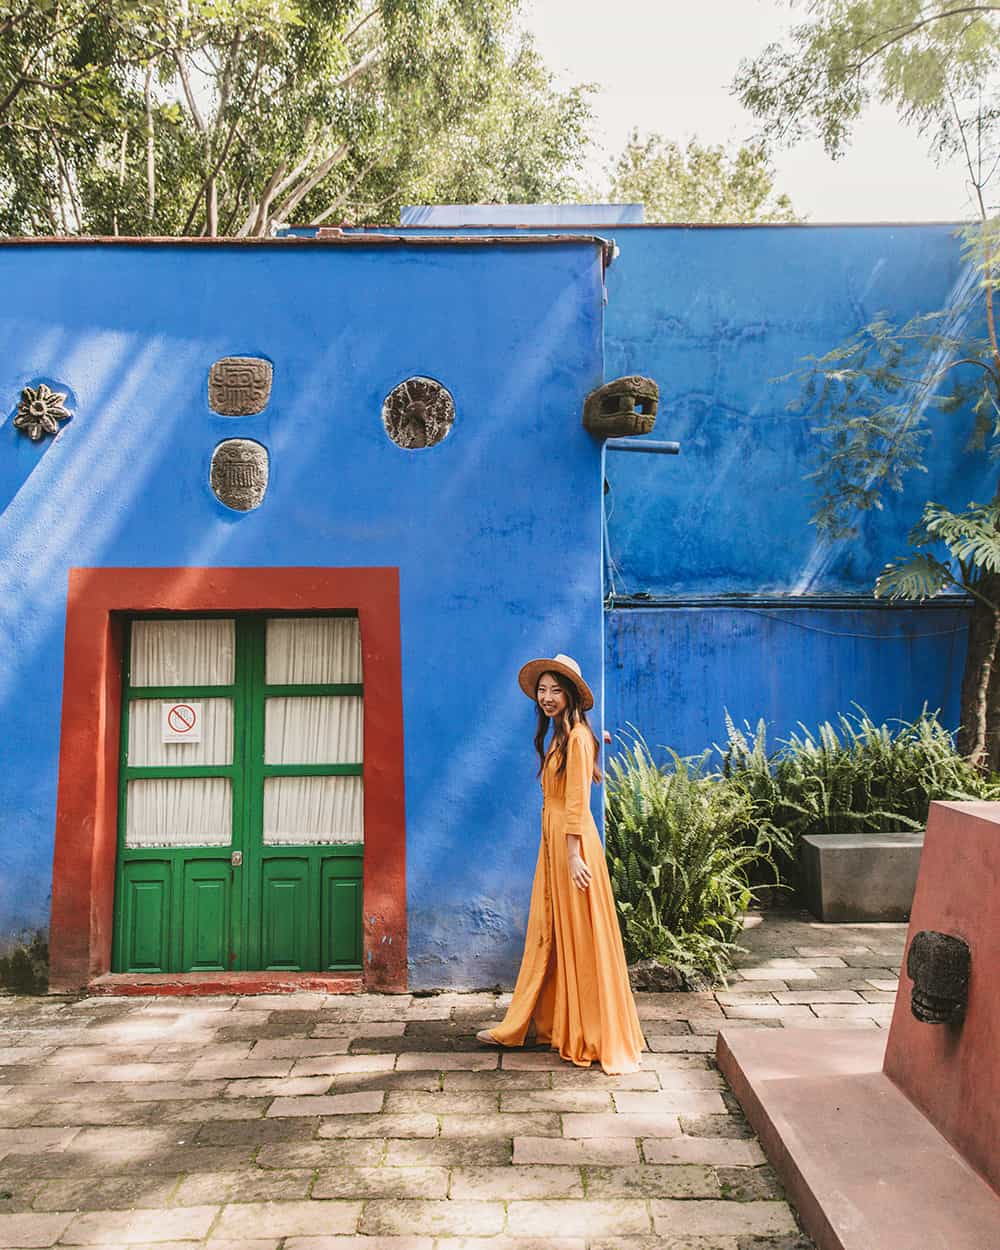 Frida Kahlo Museum in Coyoacán Mexico City